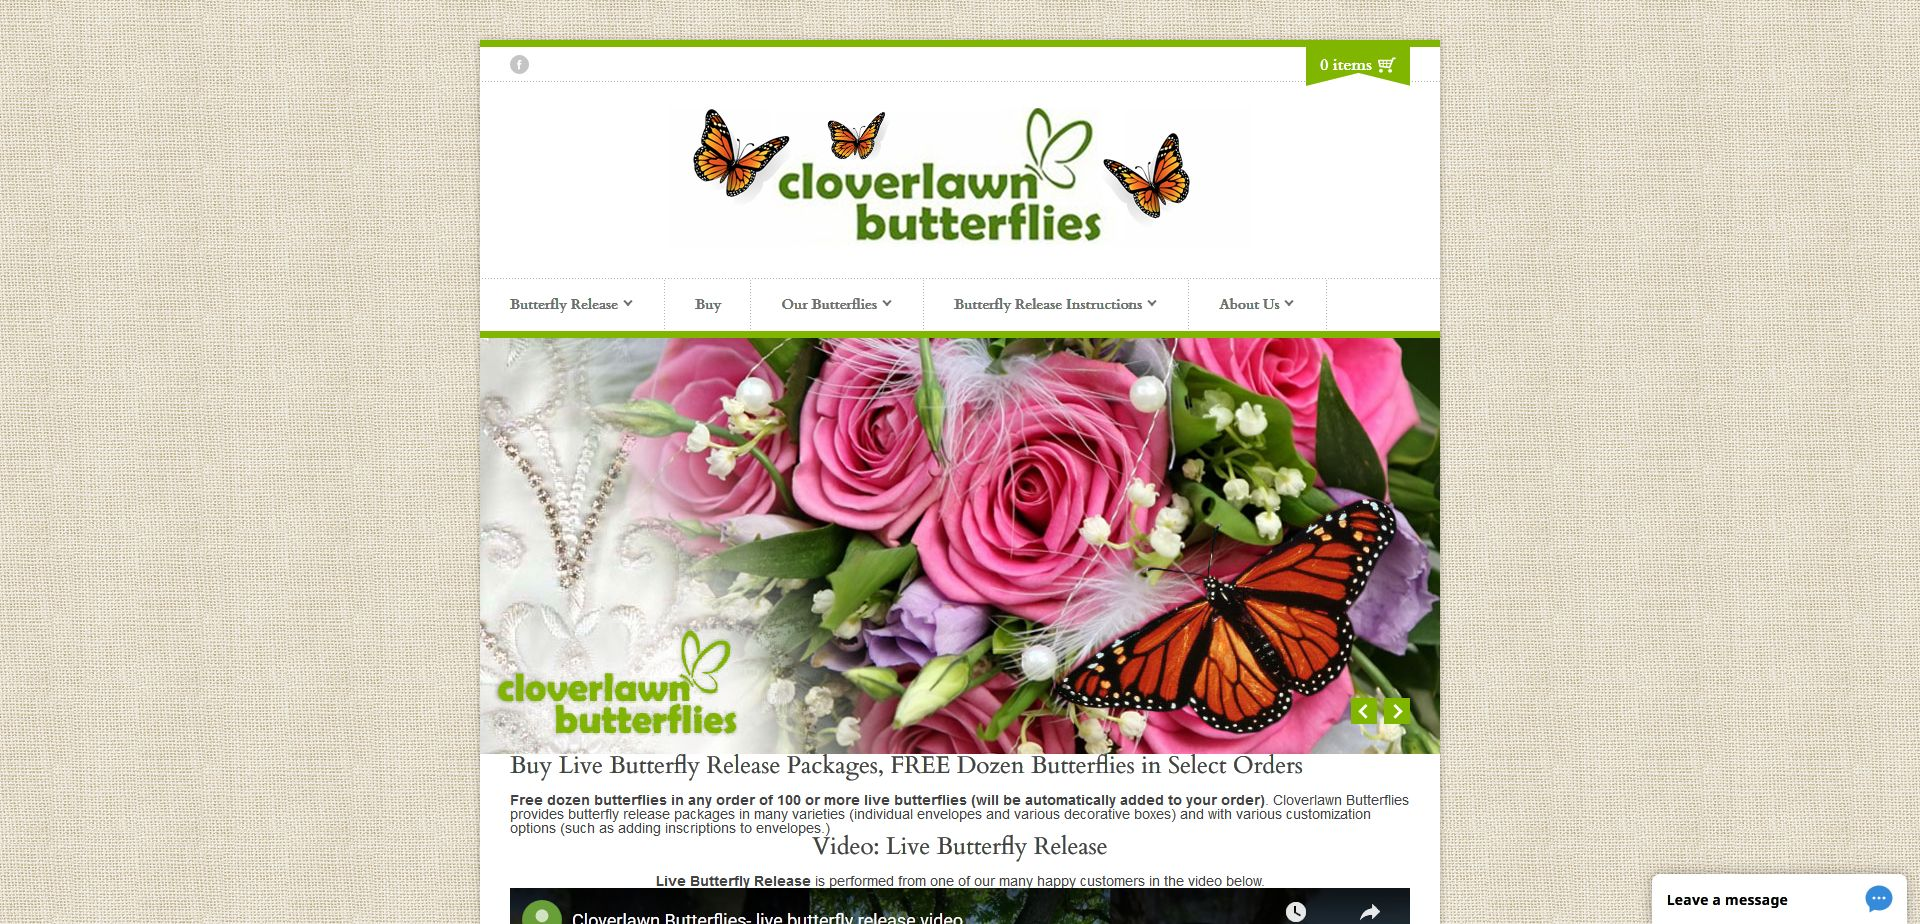 Cloverlawn Butterflies Case Study